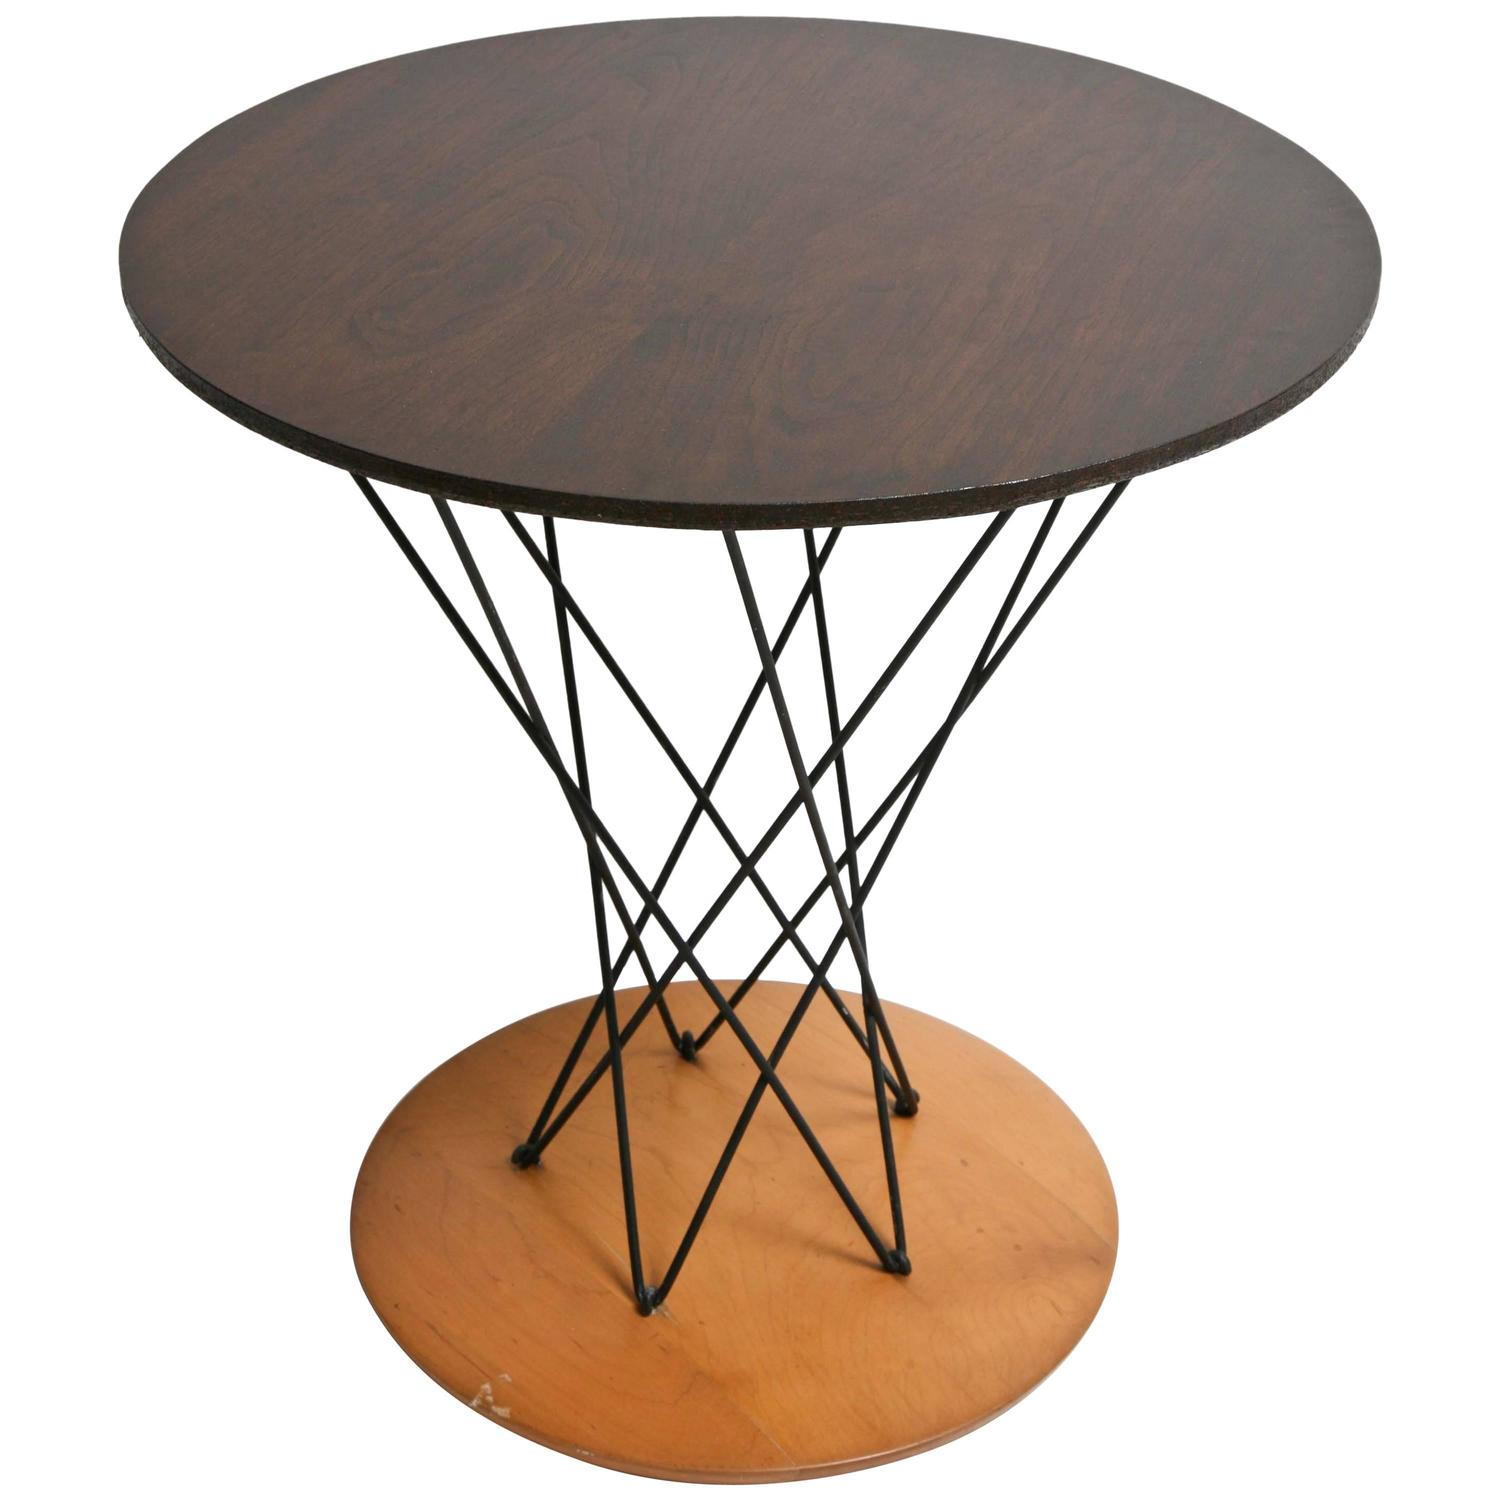 mid century modern knoll noguchi children side cyclone table at 1stdibs. Black Bedroom Furniture Sets. Home Design Ideas